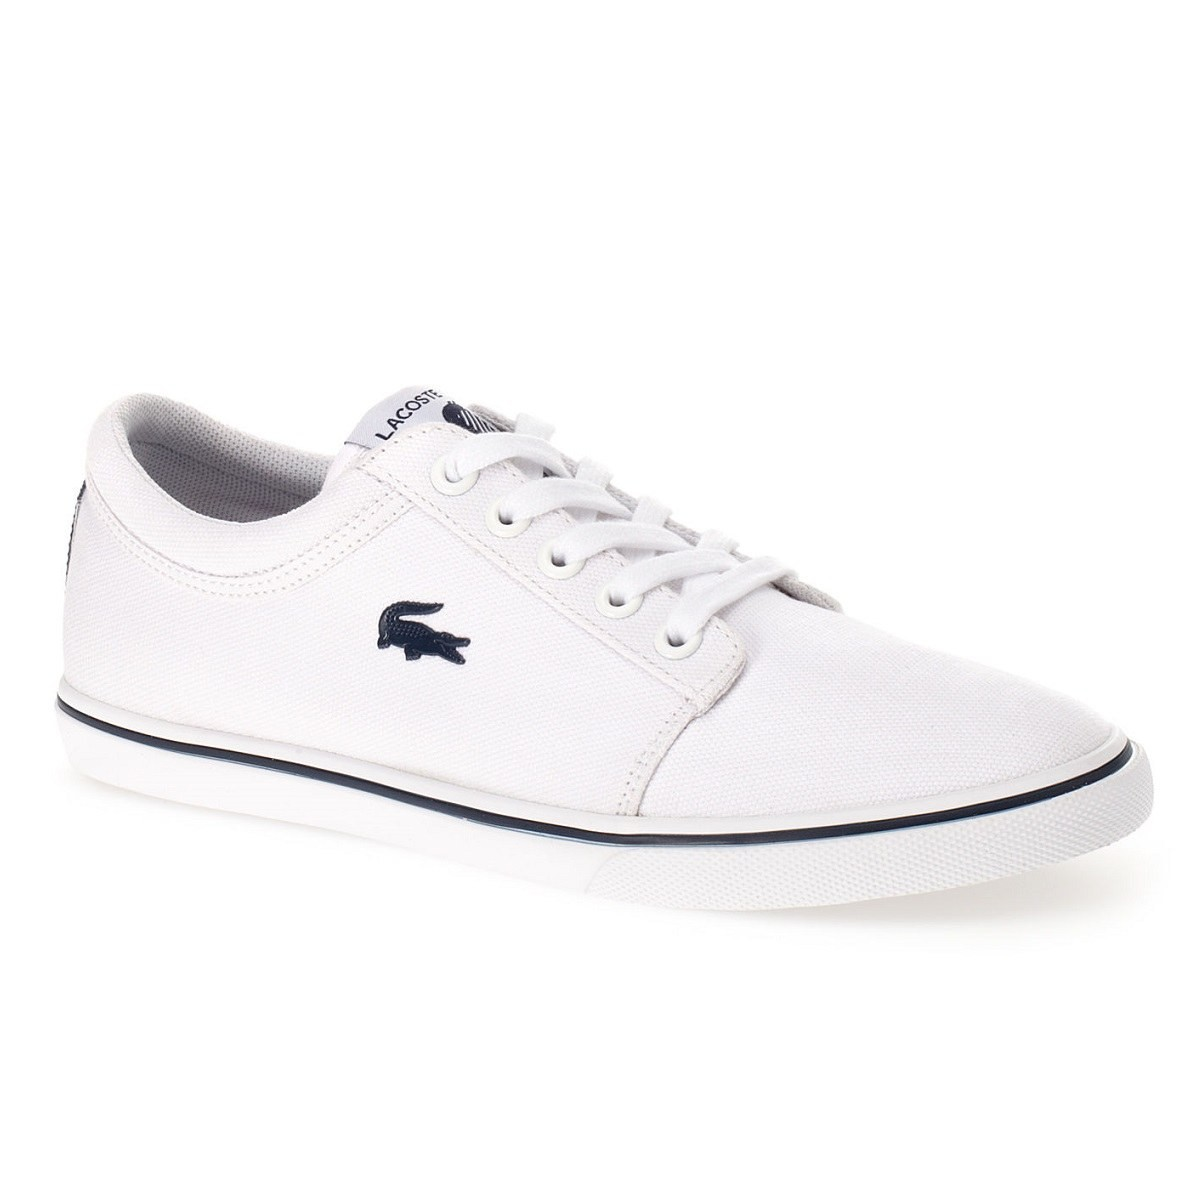 lacoste vaultstar sleek scr schuhe turnschuhe sneaker leinen damen ebay. Black Bedroom Furniture Sets. Home Design Ideas